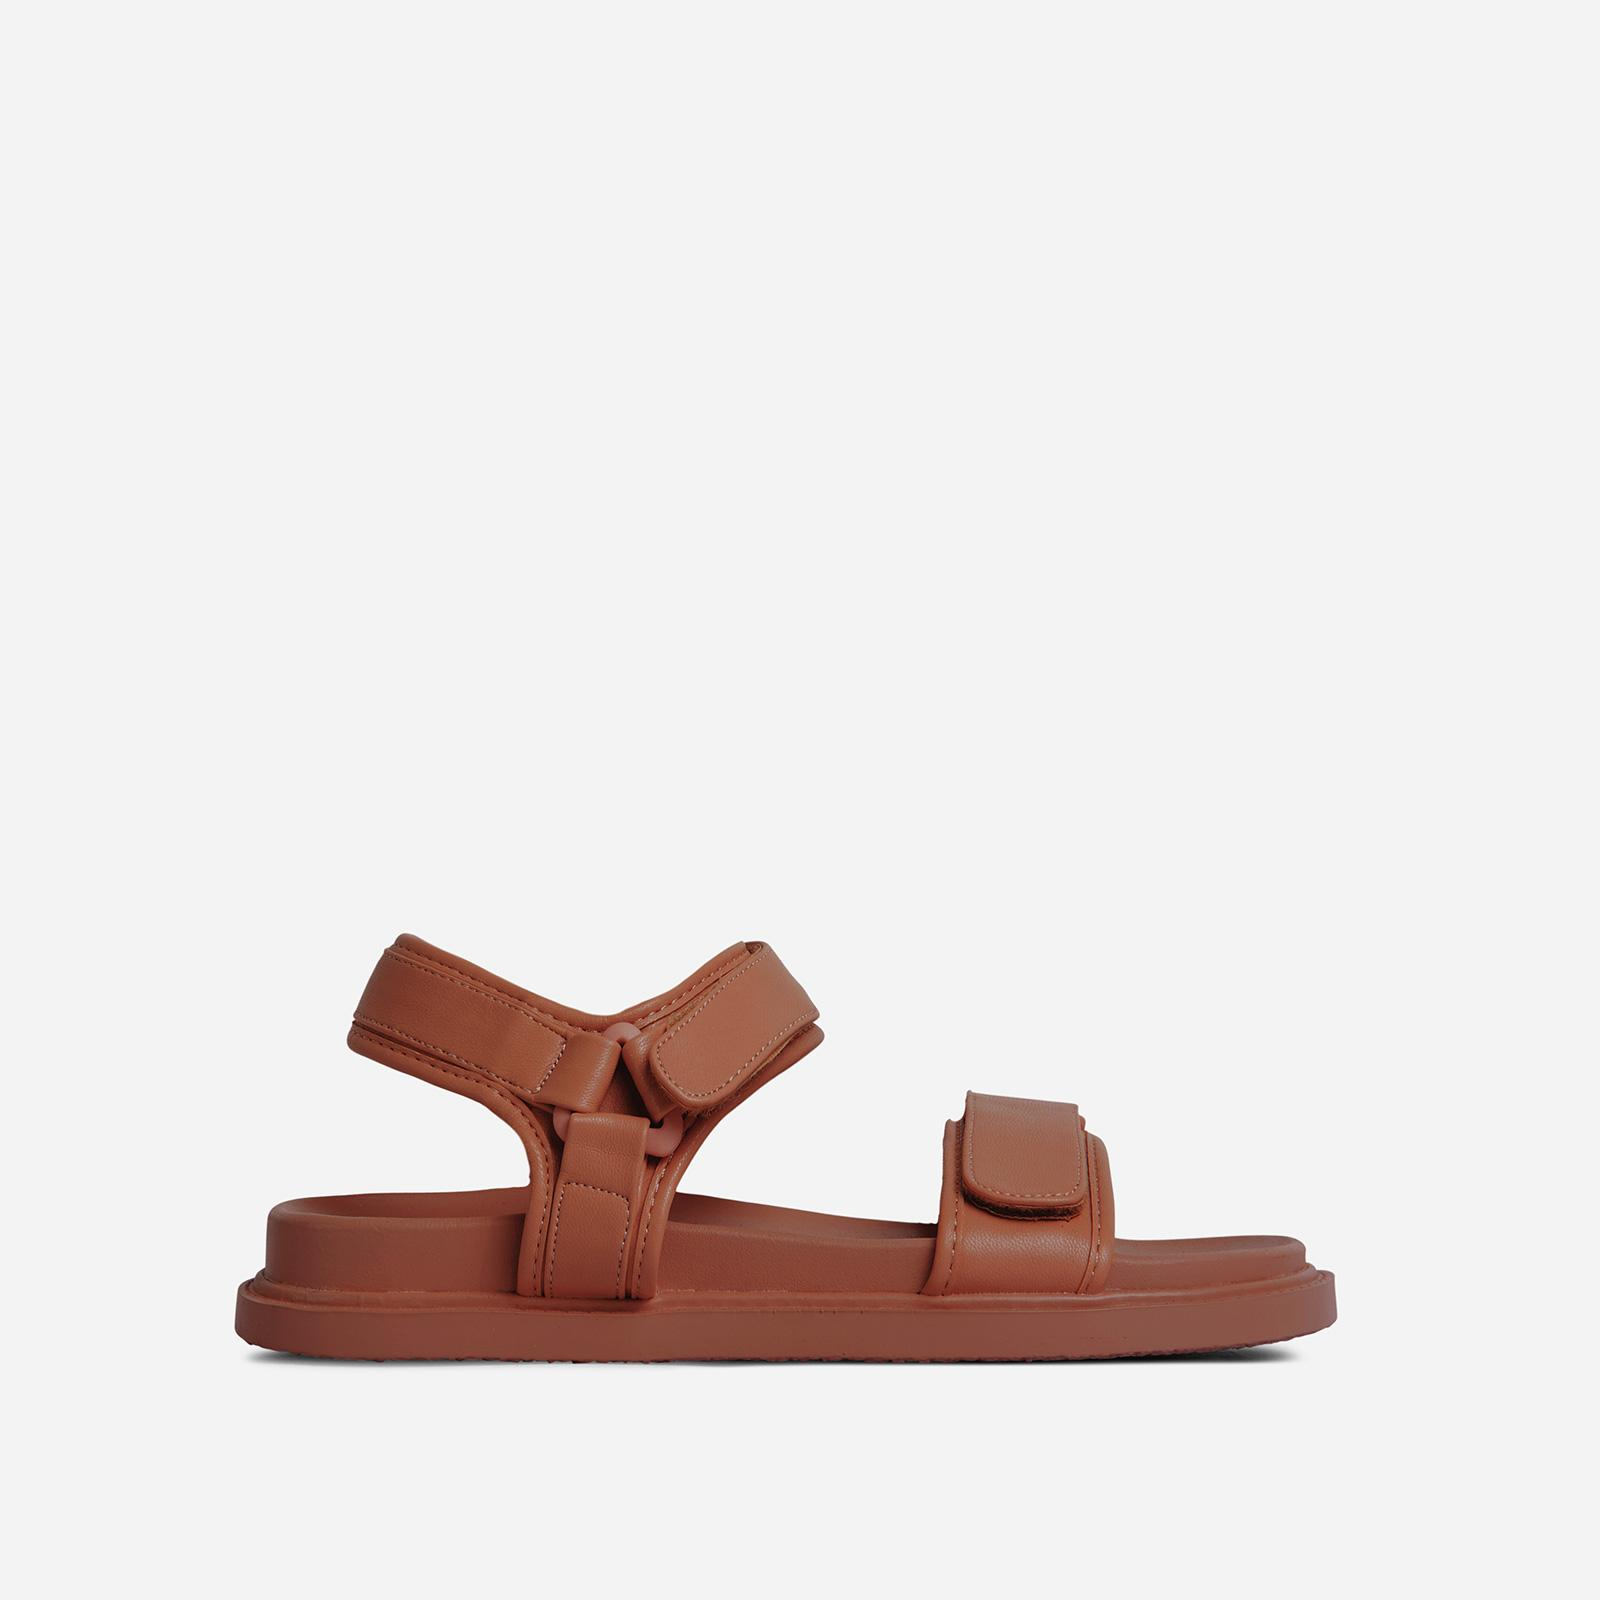 Olita Double Strap Flat Dad Sandal In Tan Brown Faux Leather, Brown